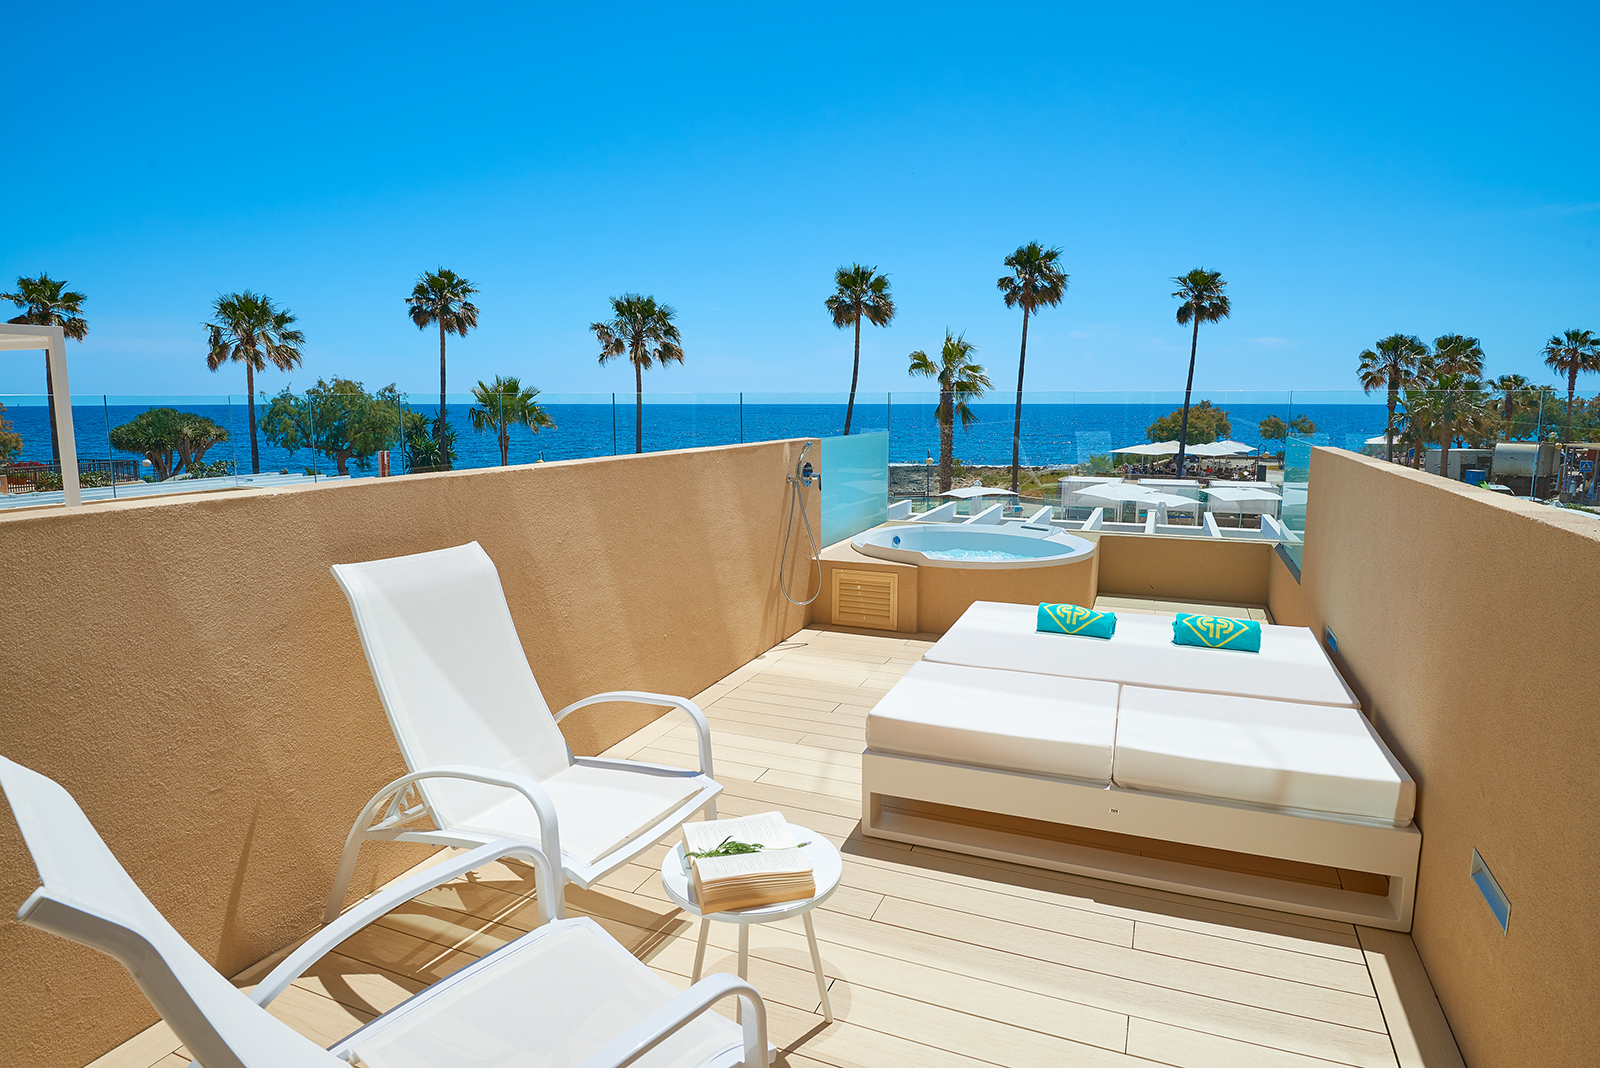 Facilities and services on offer at Protur Bonamar Hotel Cala Millor